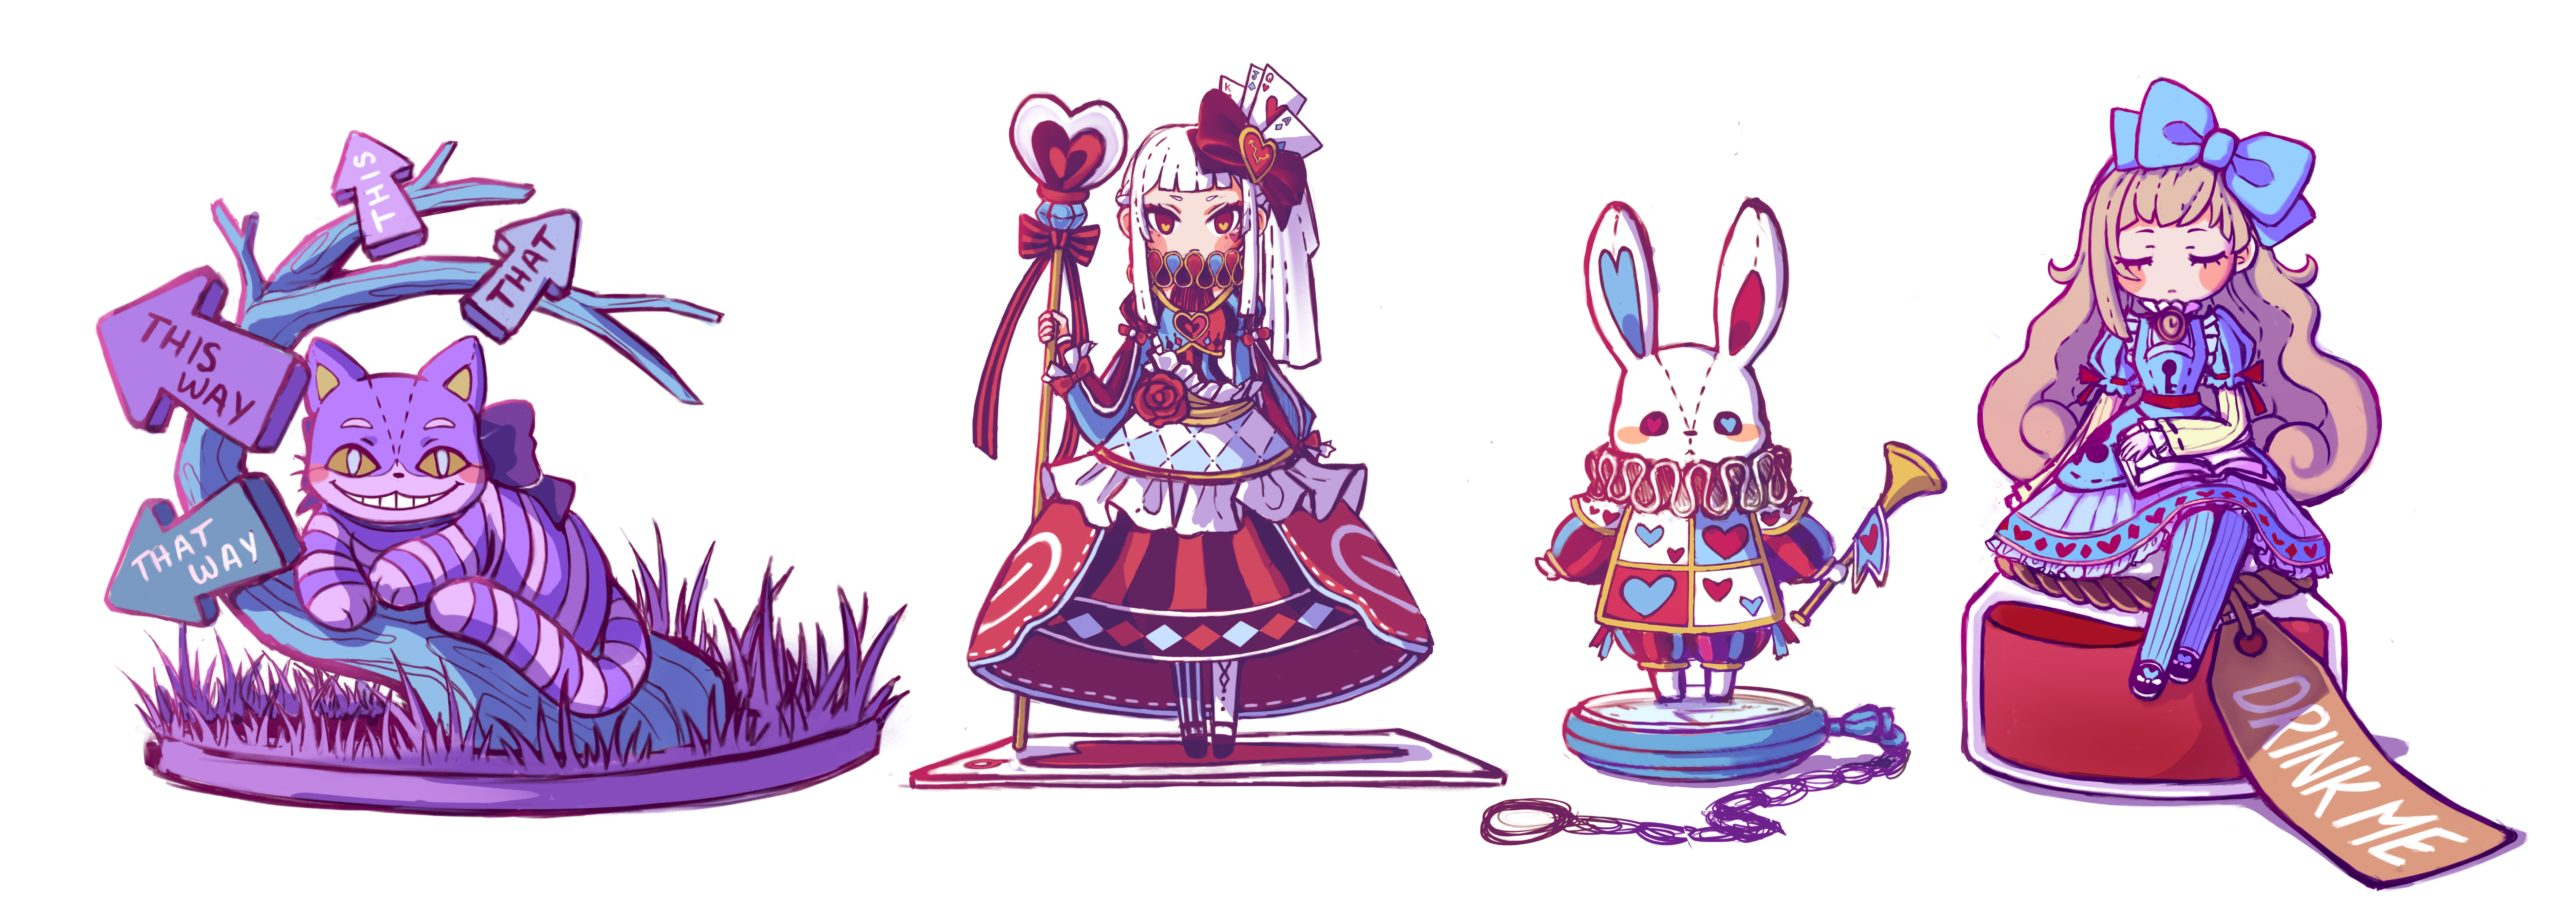 Toy figure collection concept - Alice in Wonderland theme